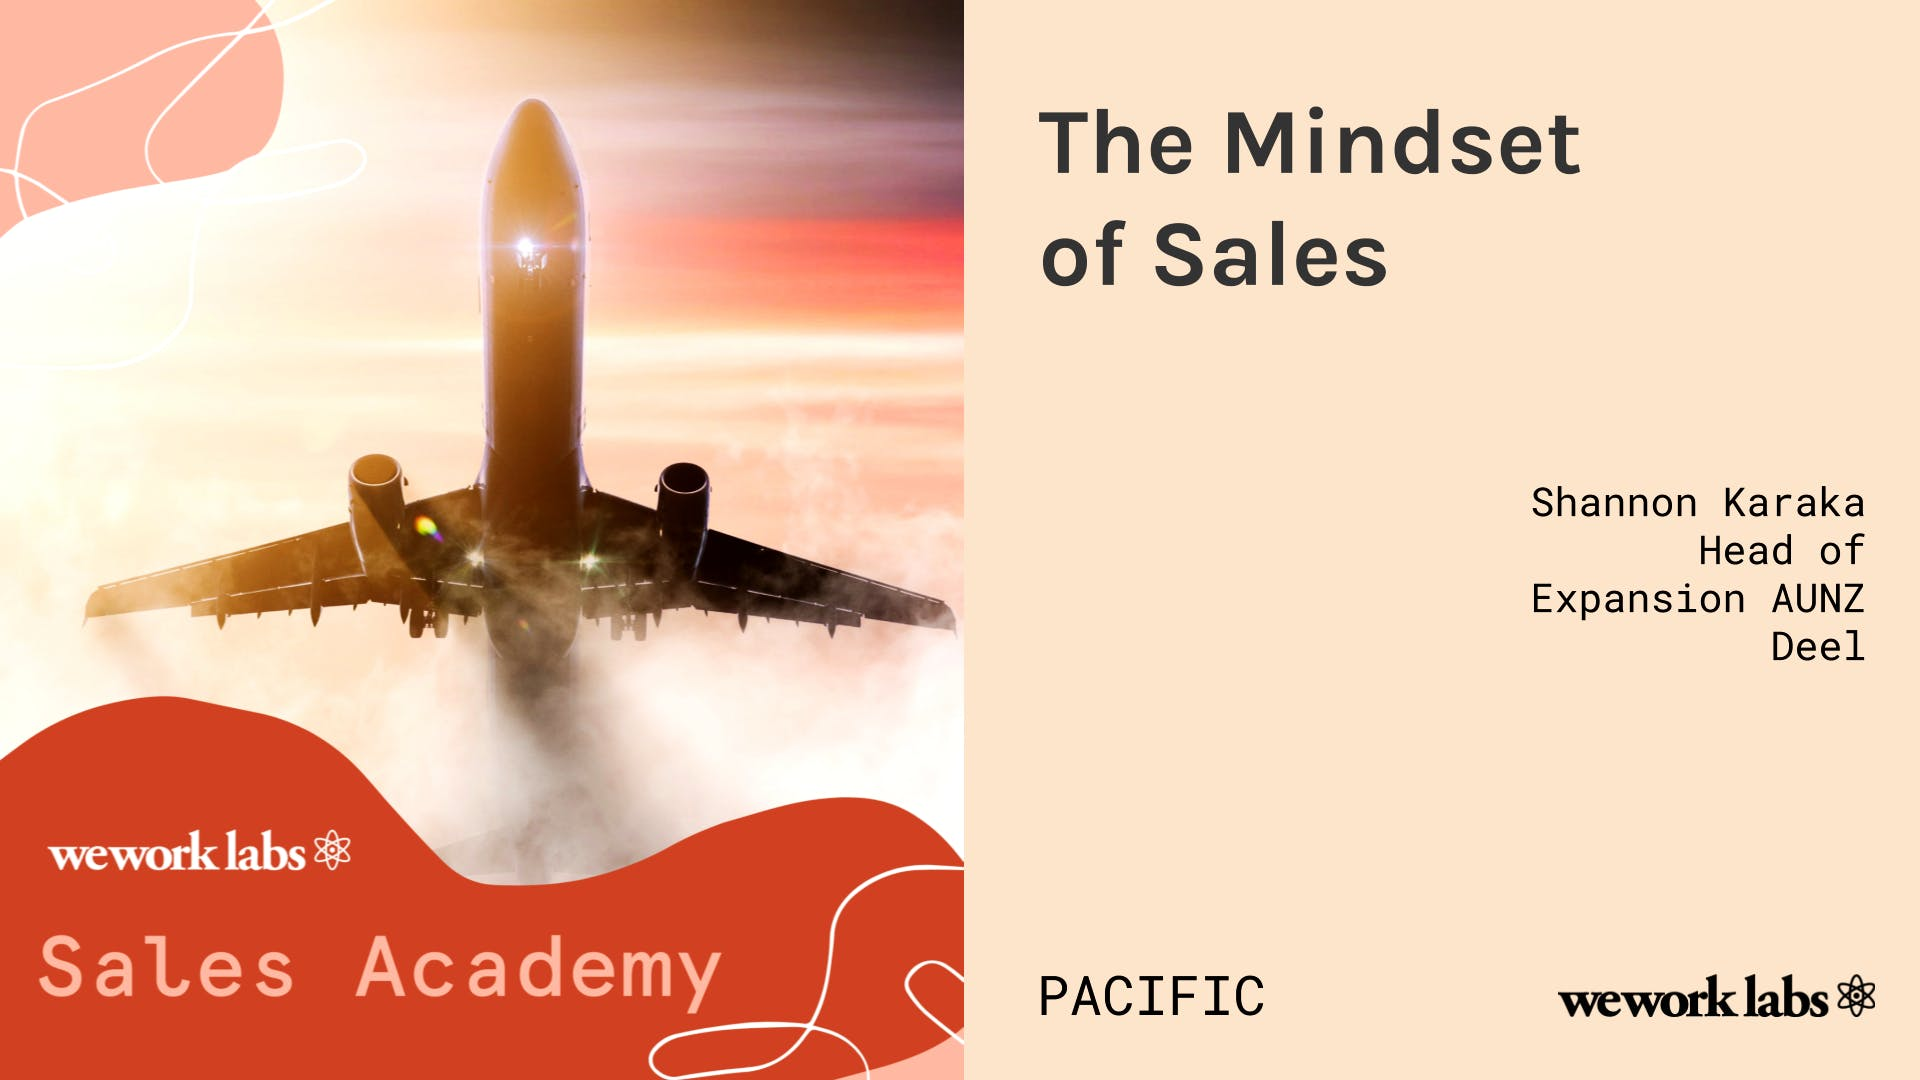 Sales Academy (Pacific): The Mindset of Sales